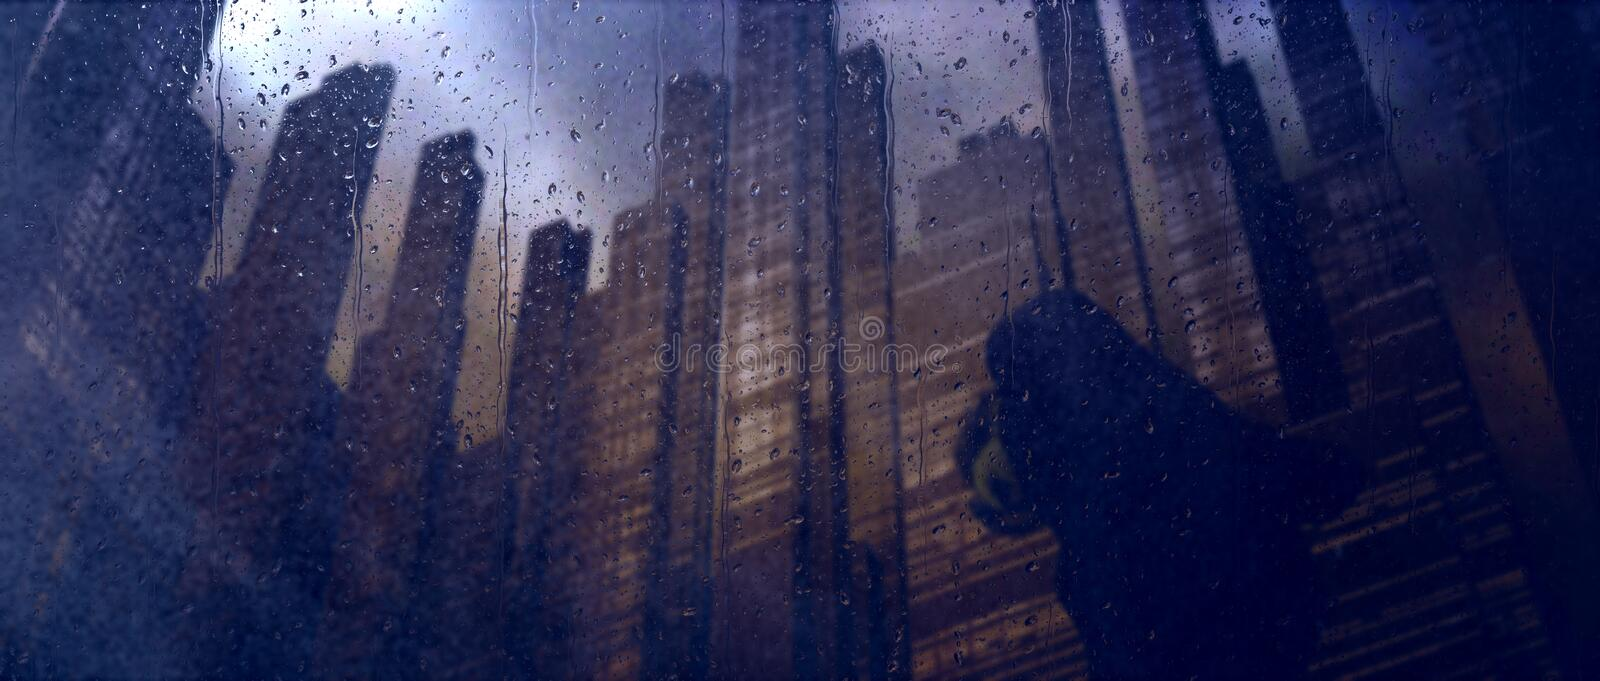 Dystopian dark city rain. Man bent over in rain under tall buildings